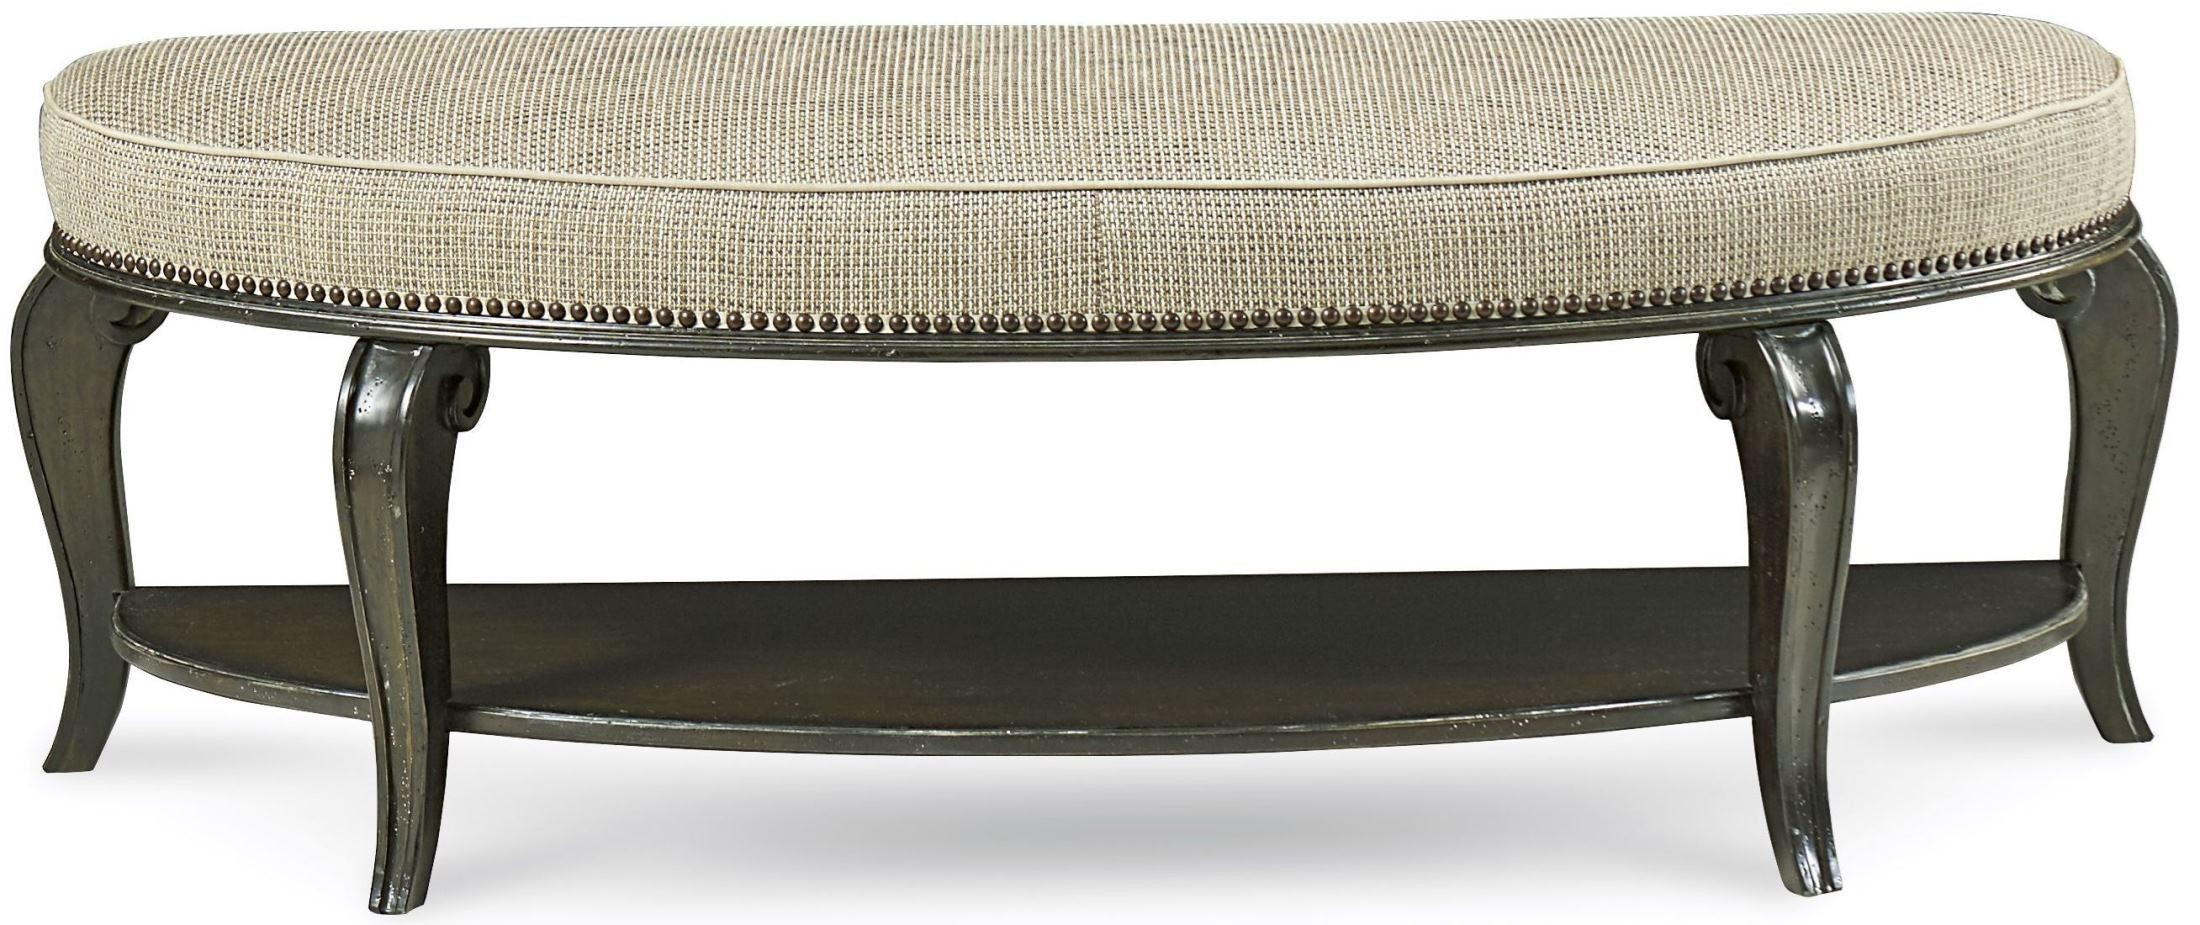 Continental Vintage Melange Bed Bench From Art Coleman Furniture